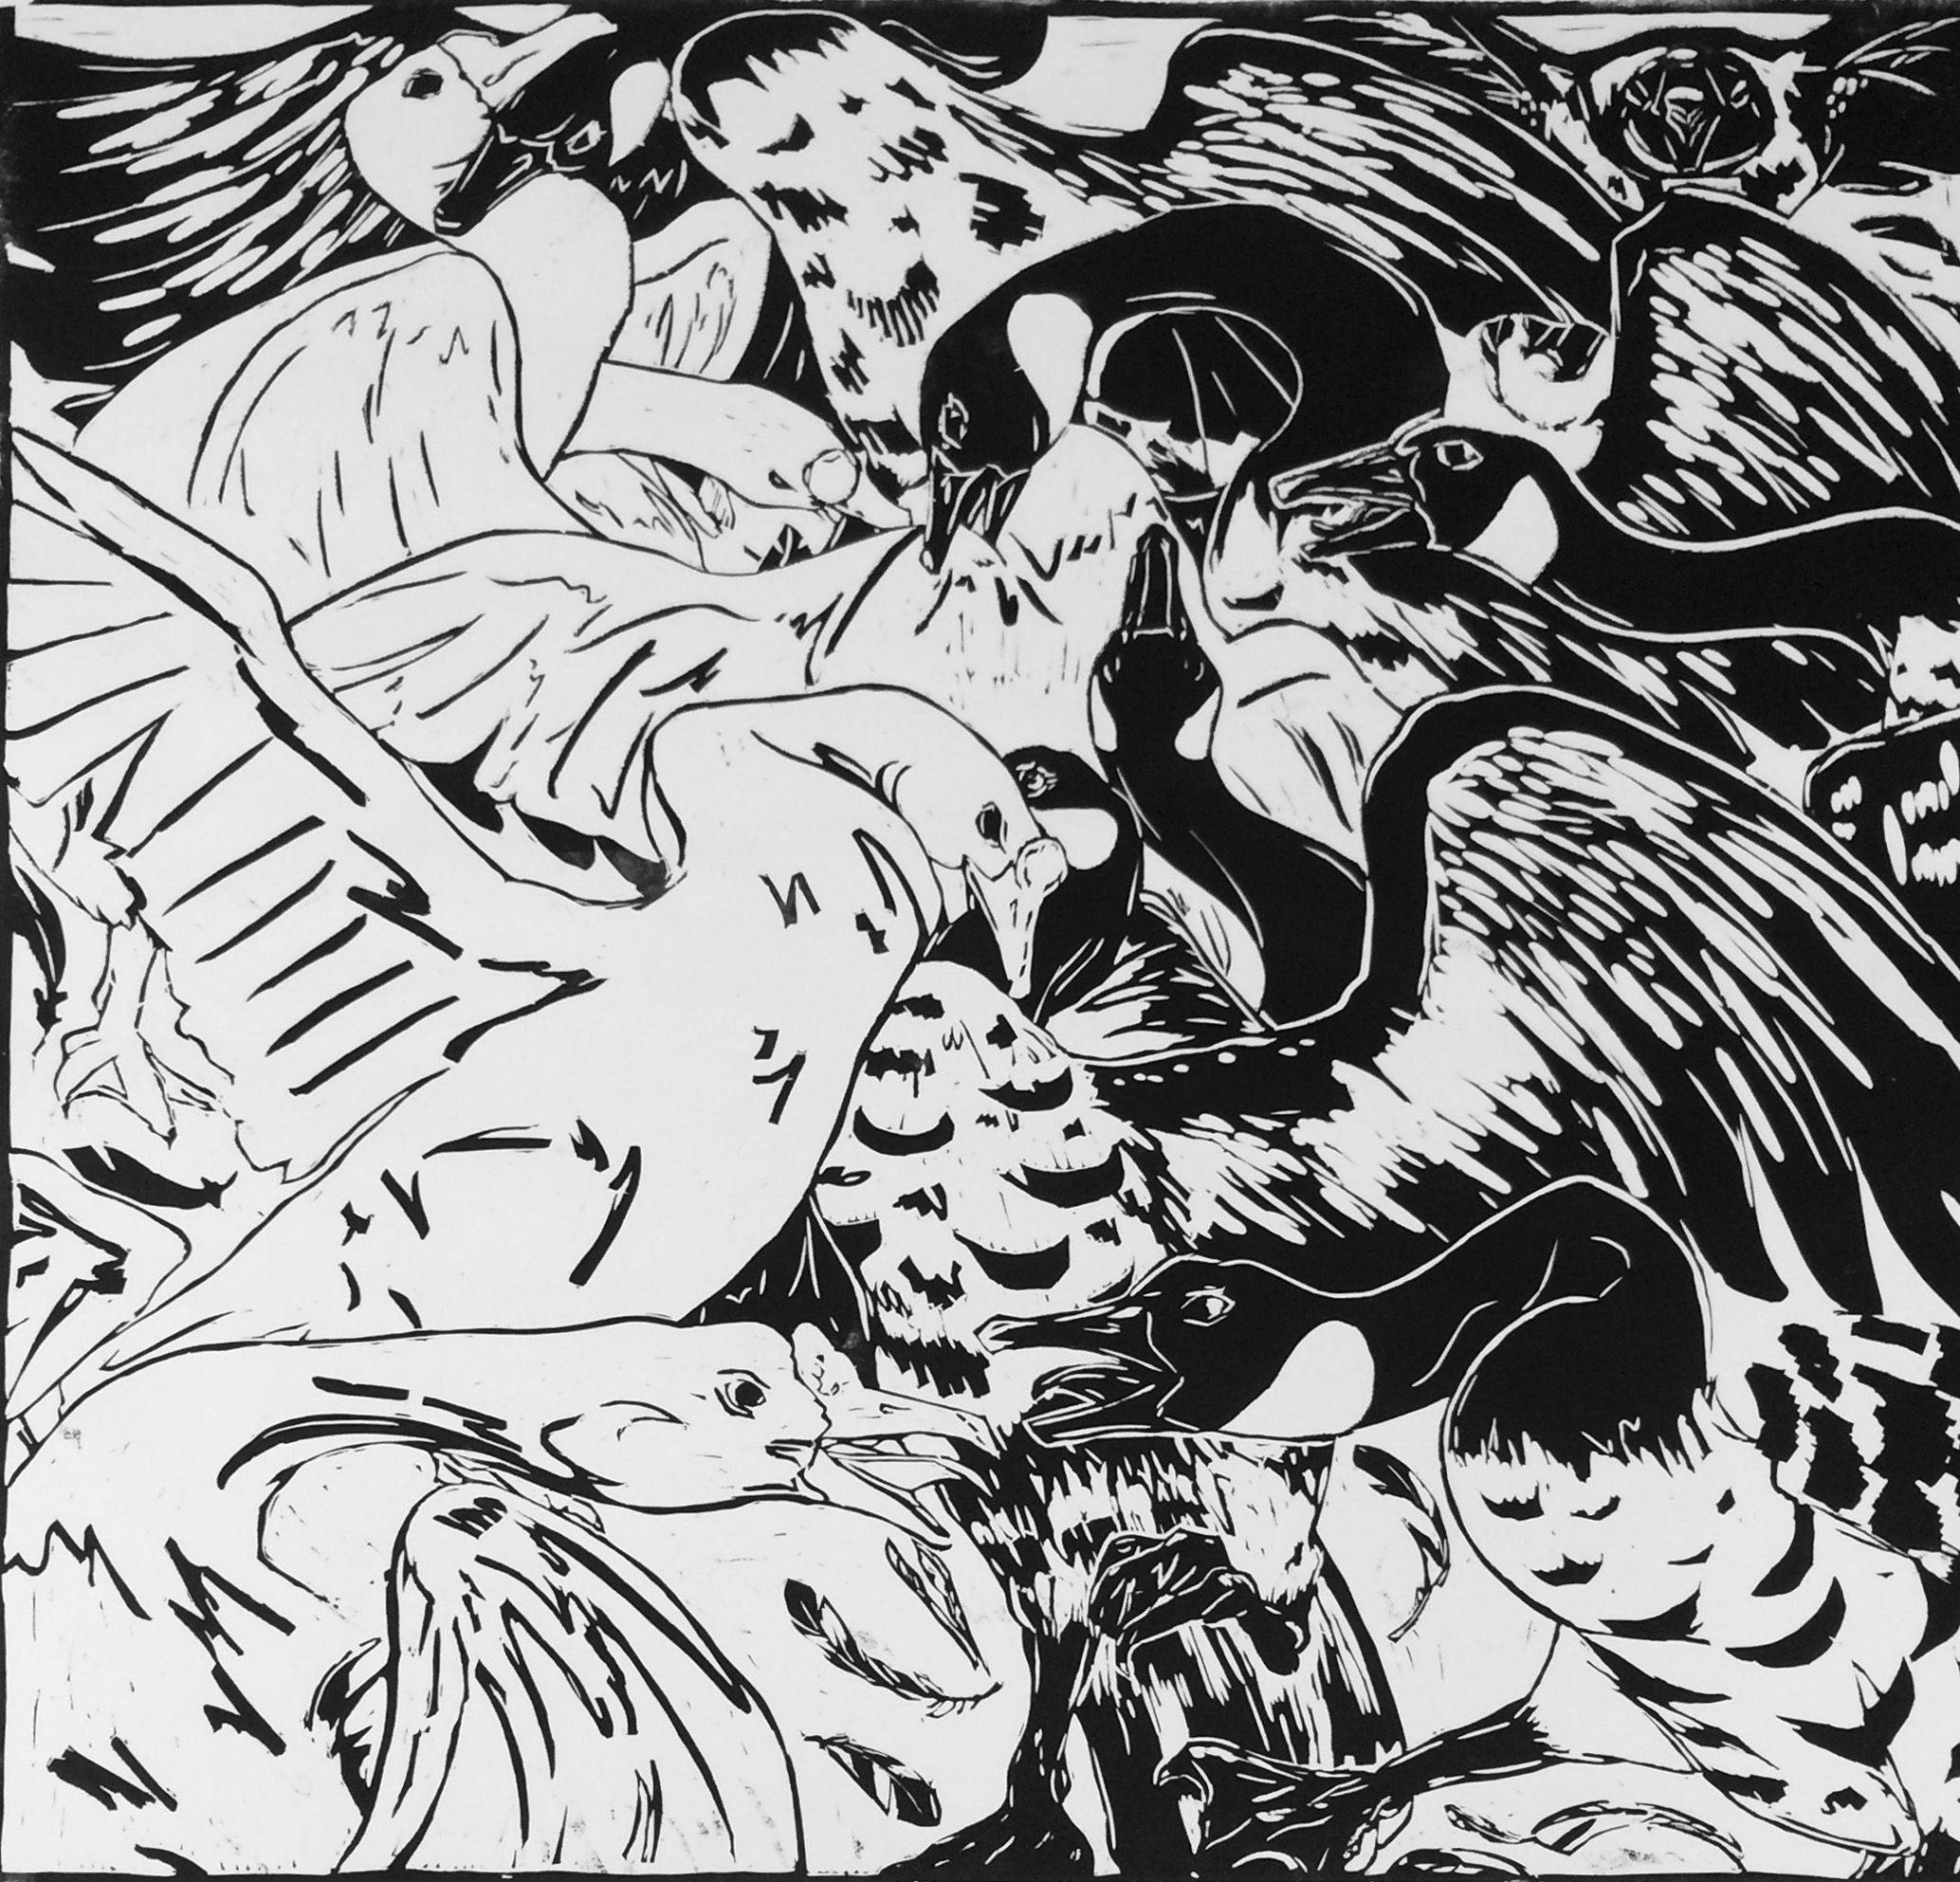 Kelsey Livingston, Turf War, 2016, relief print on paper, 36 x 36 inches